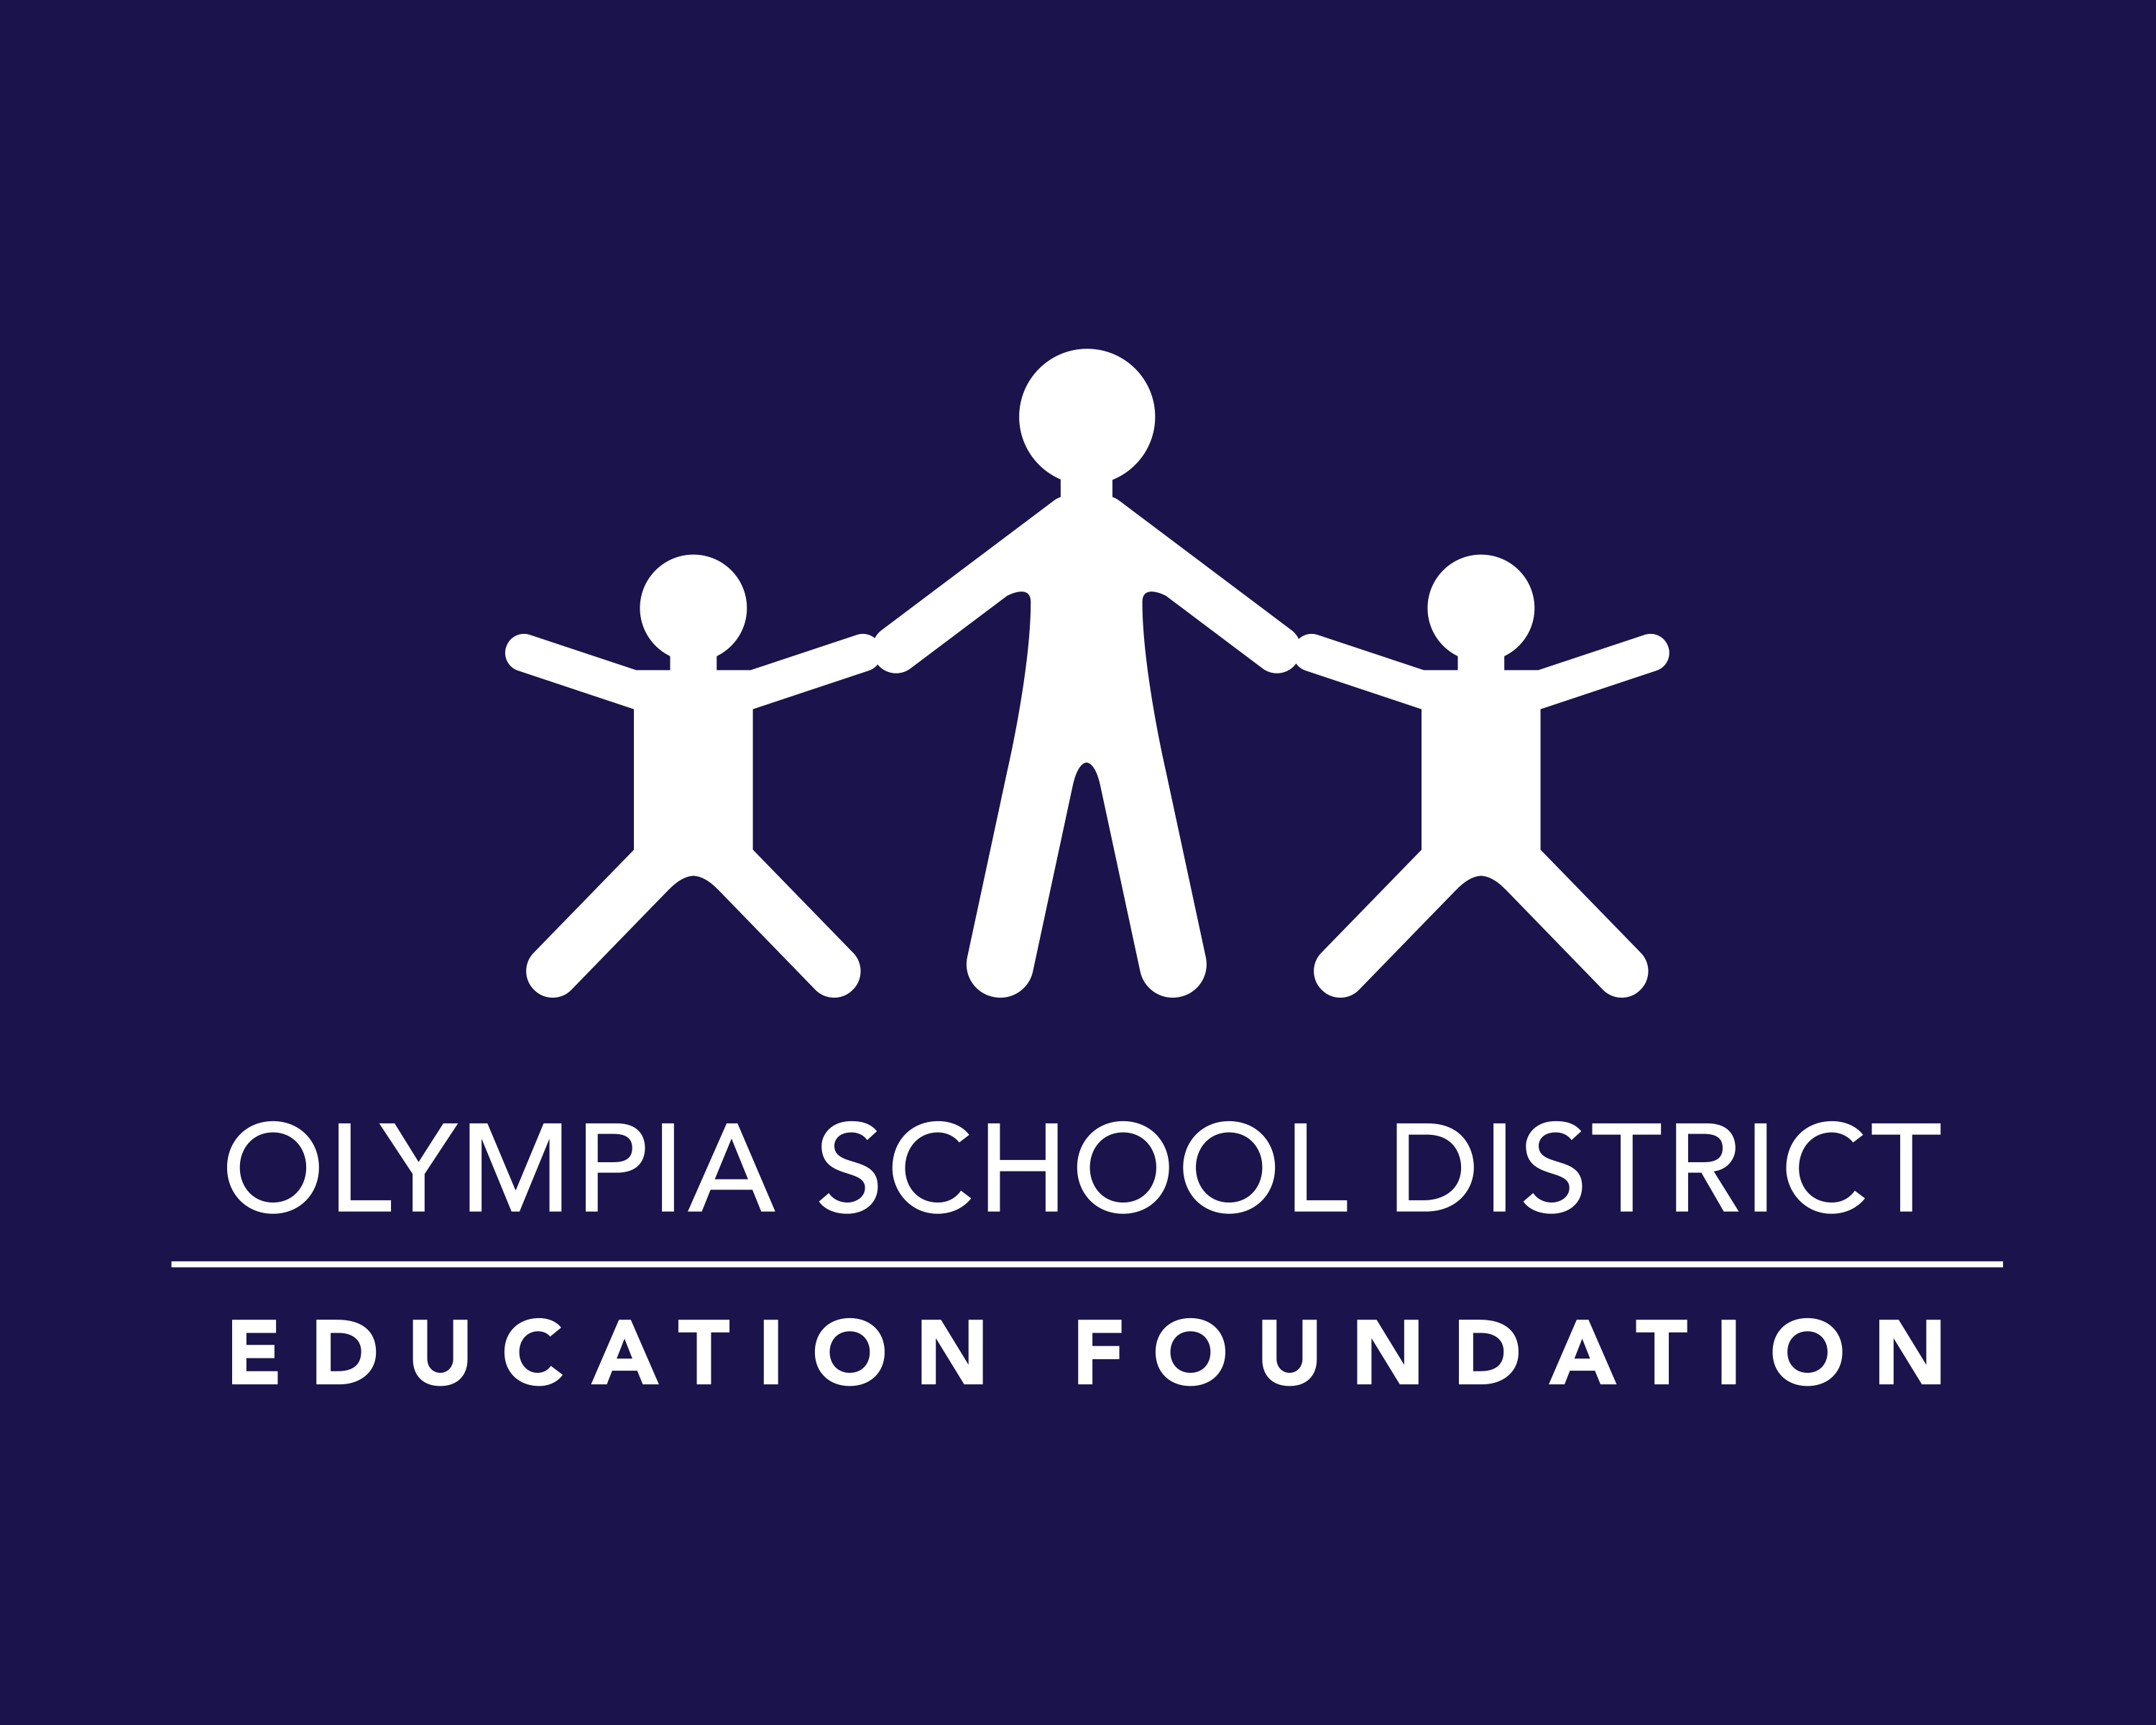 OSDEF Logo with image of stick figures of an adult and children and the name of the Foundation beneath